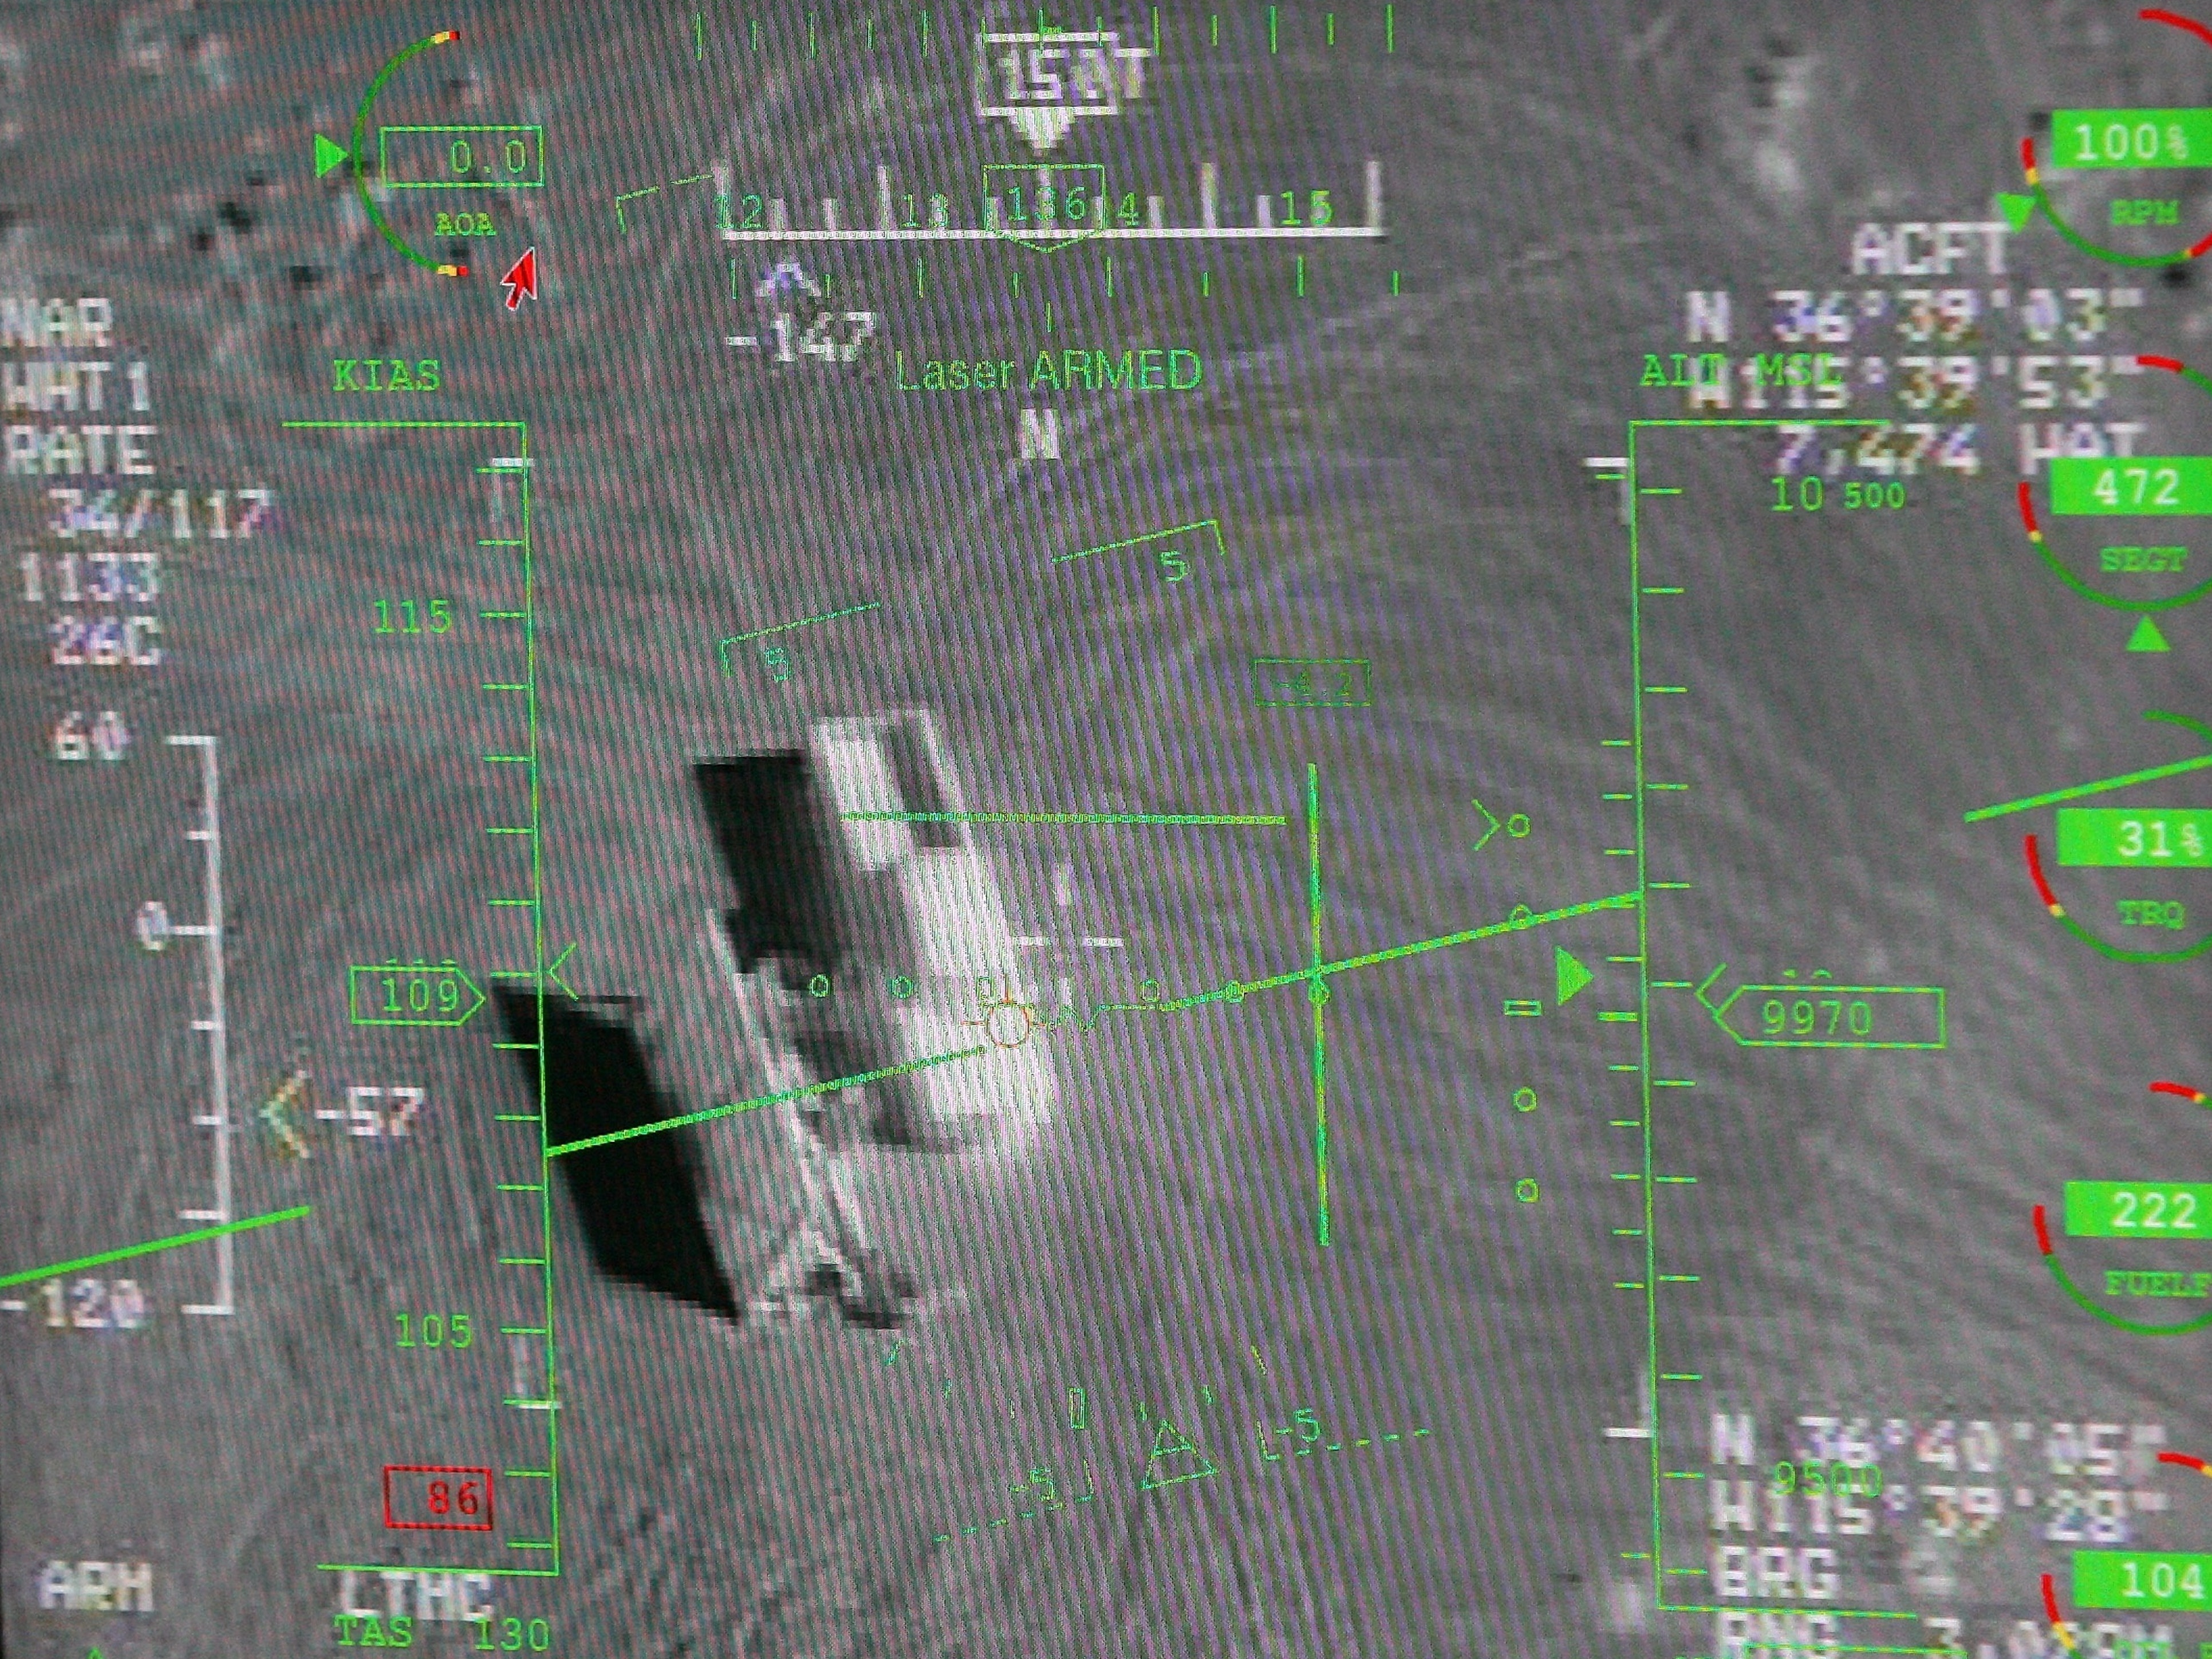 A pilot's heads up display in a ground control station shows a truck from the view of a camera on an MQ-9 Reaper during a training mission.